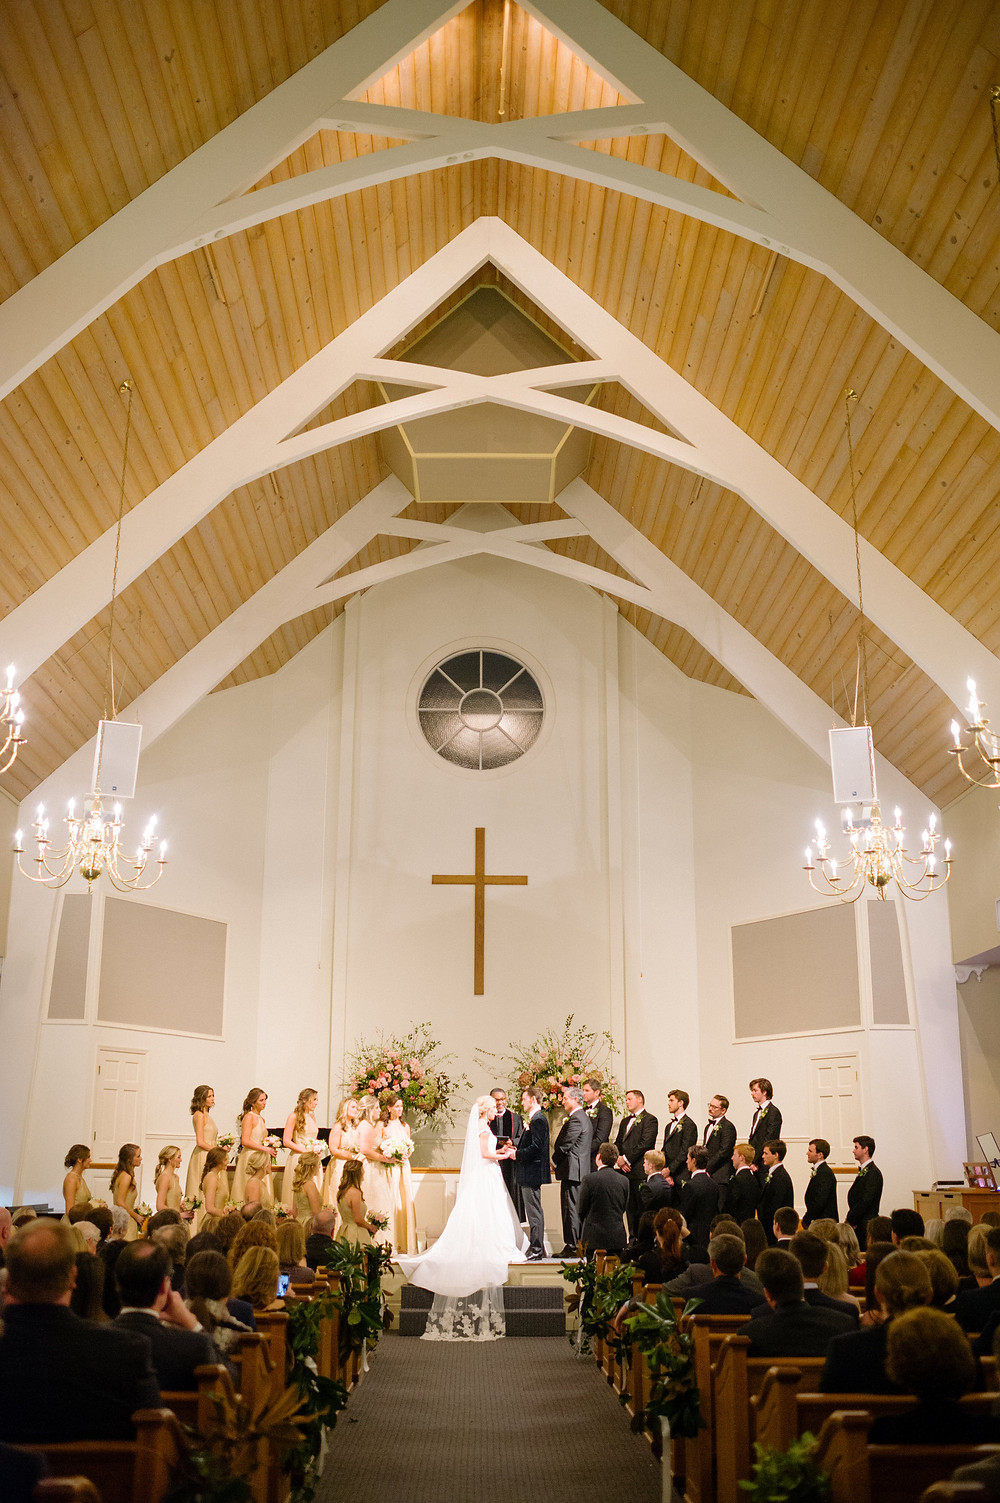 Altamont Church Birmingham Al wedding